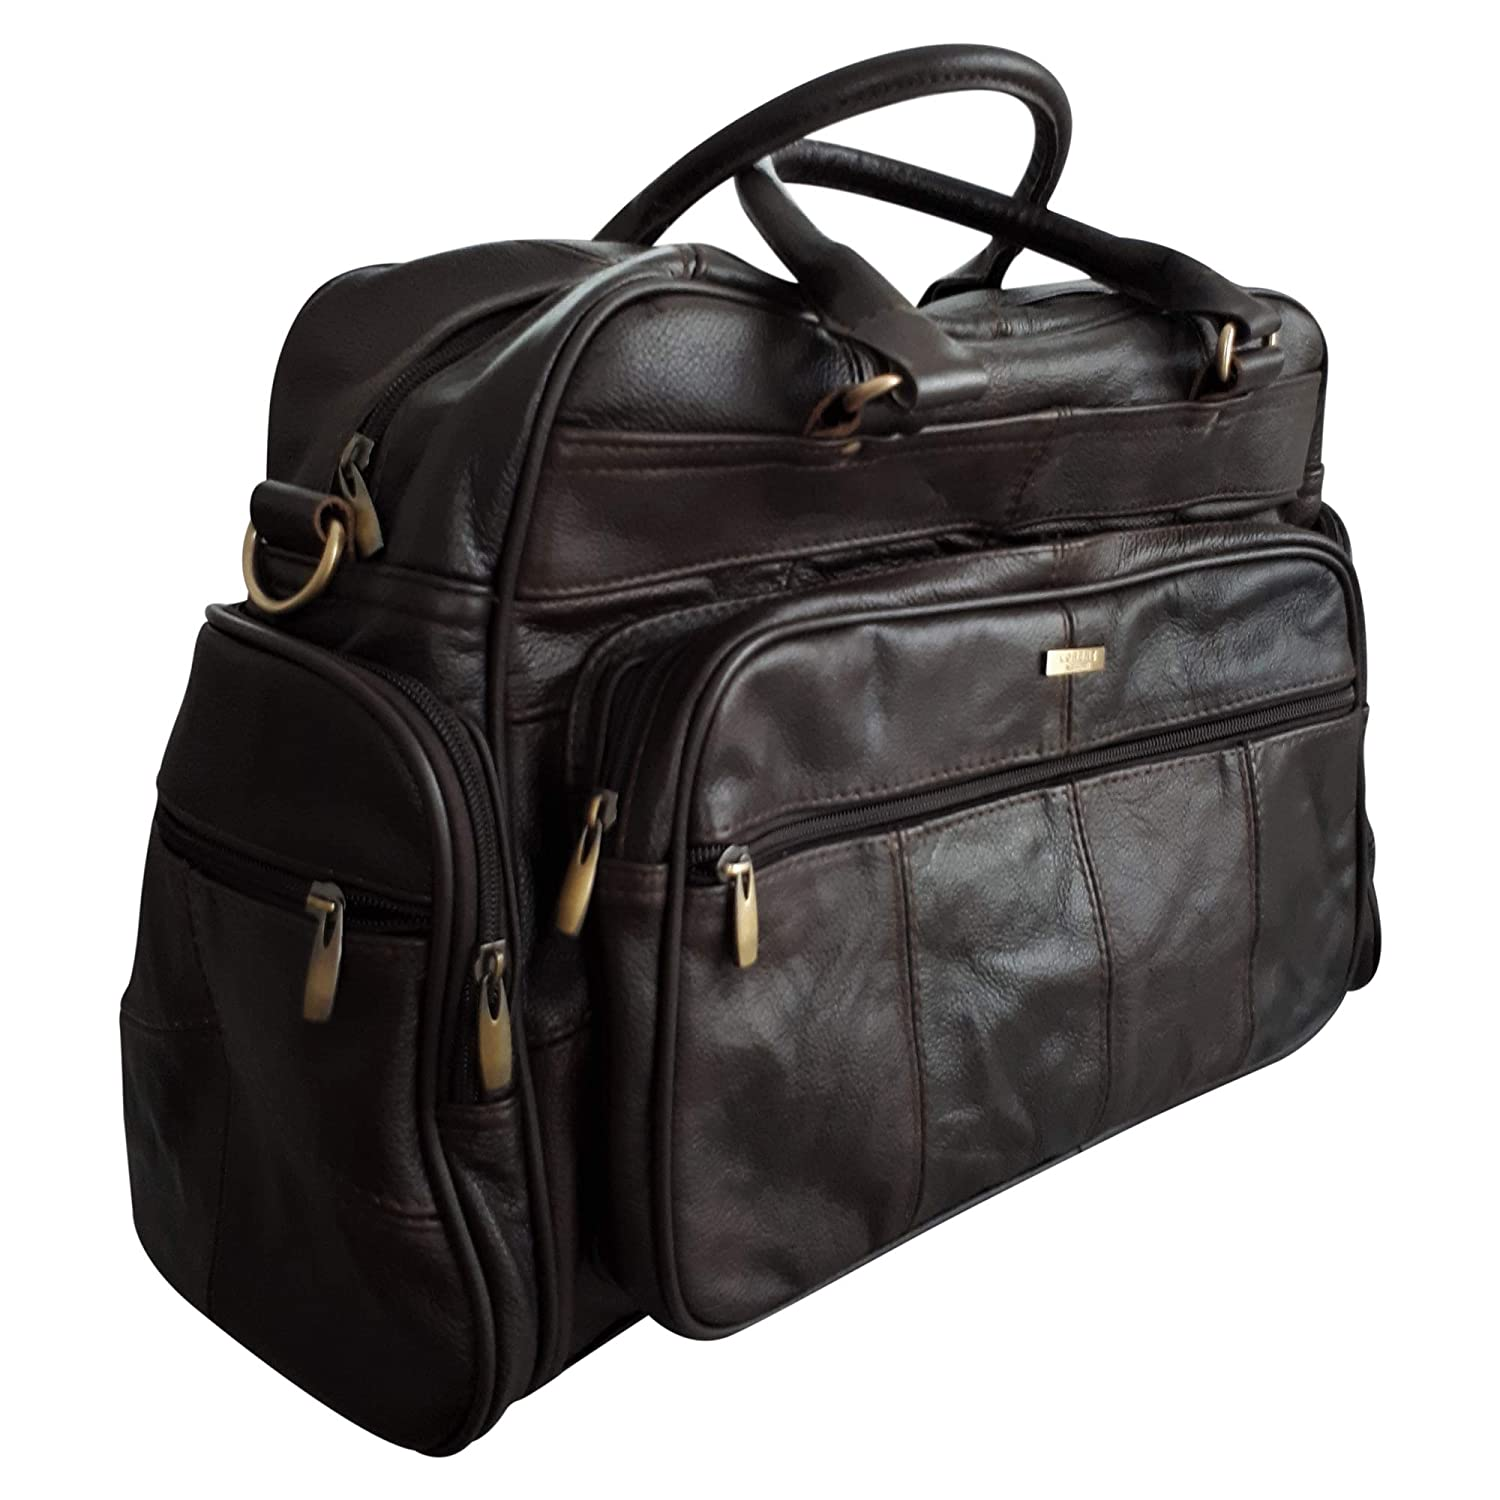 6d44d4d74a MENS LEATHER HOLDALL LUXURY TRAVEL BAG GYM SPORTS BAG LADIES FLIGHT BAG  CABIN BAG WEEKEND BAG IN BROWN  Amazon.co.uk  Luggage